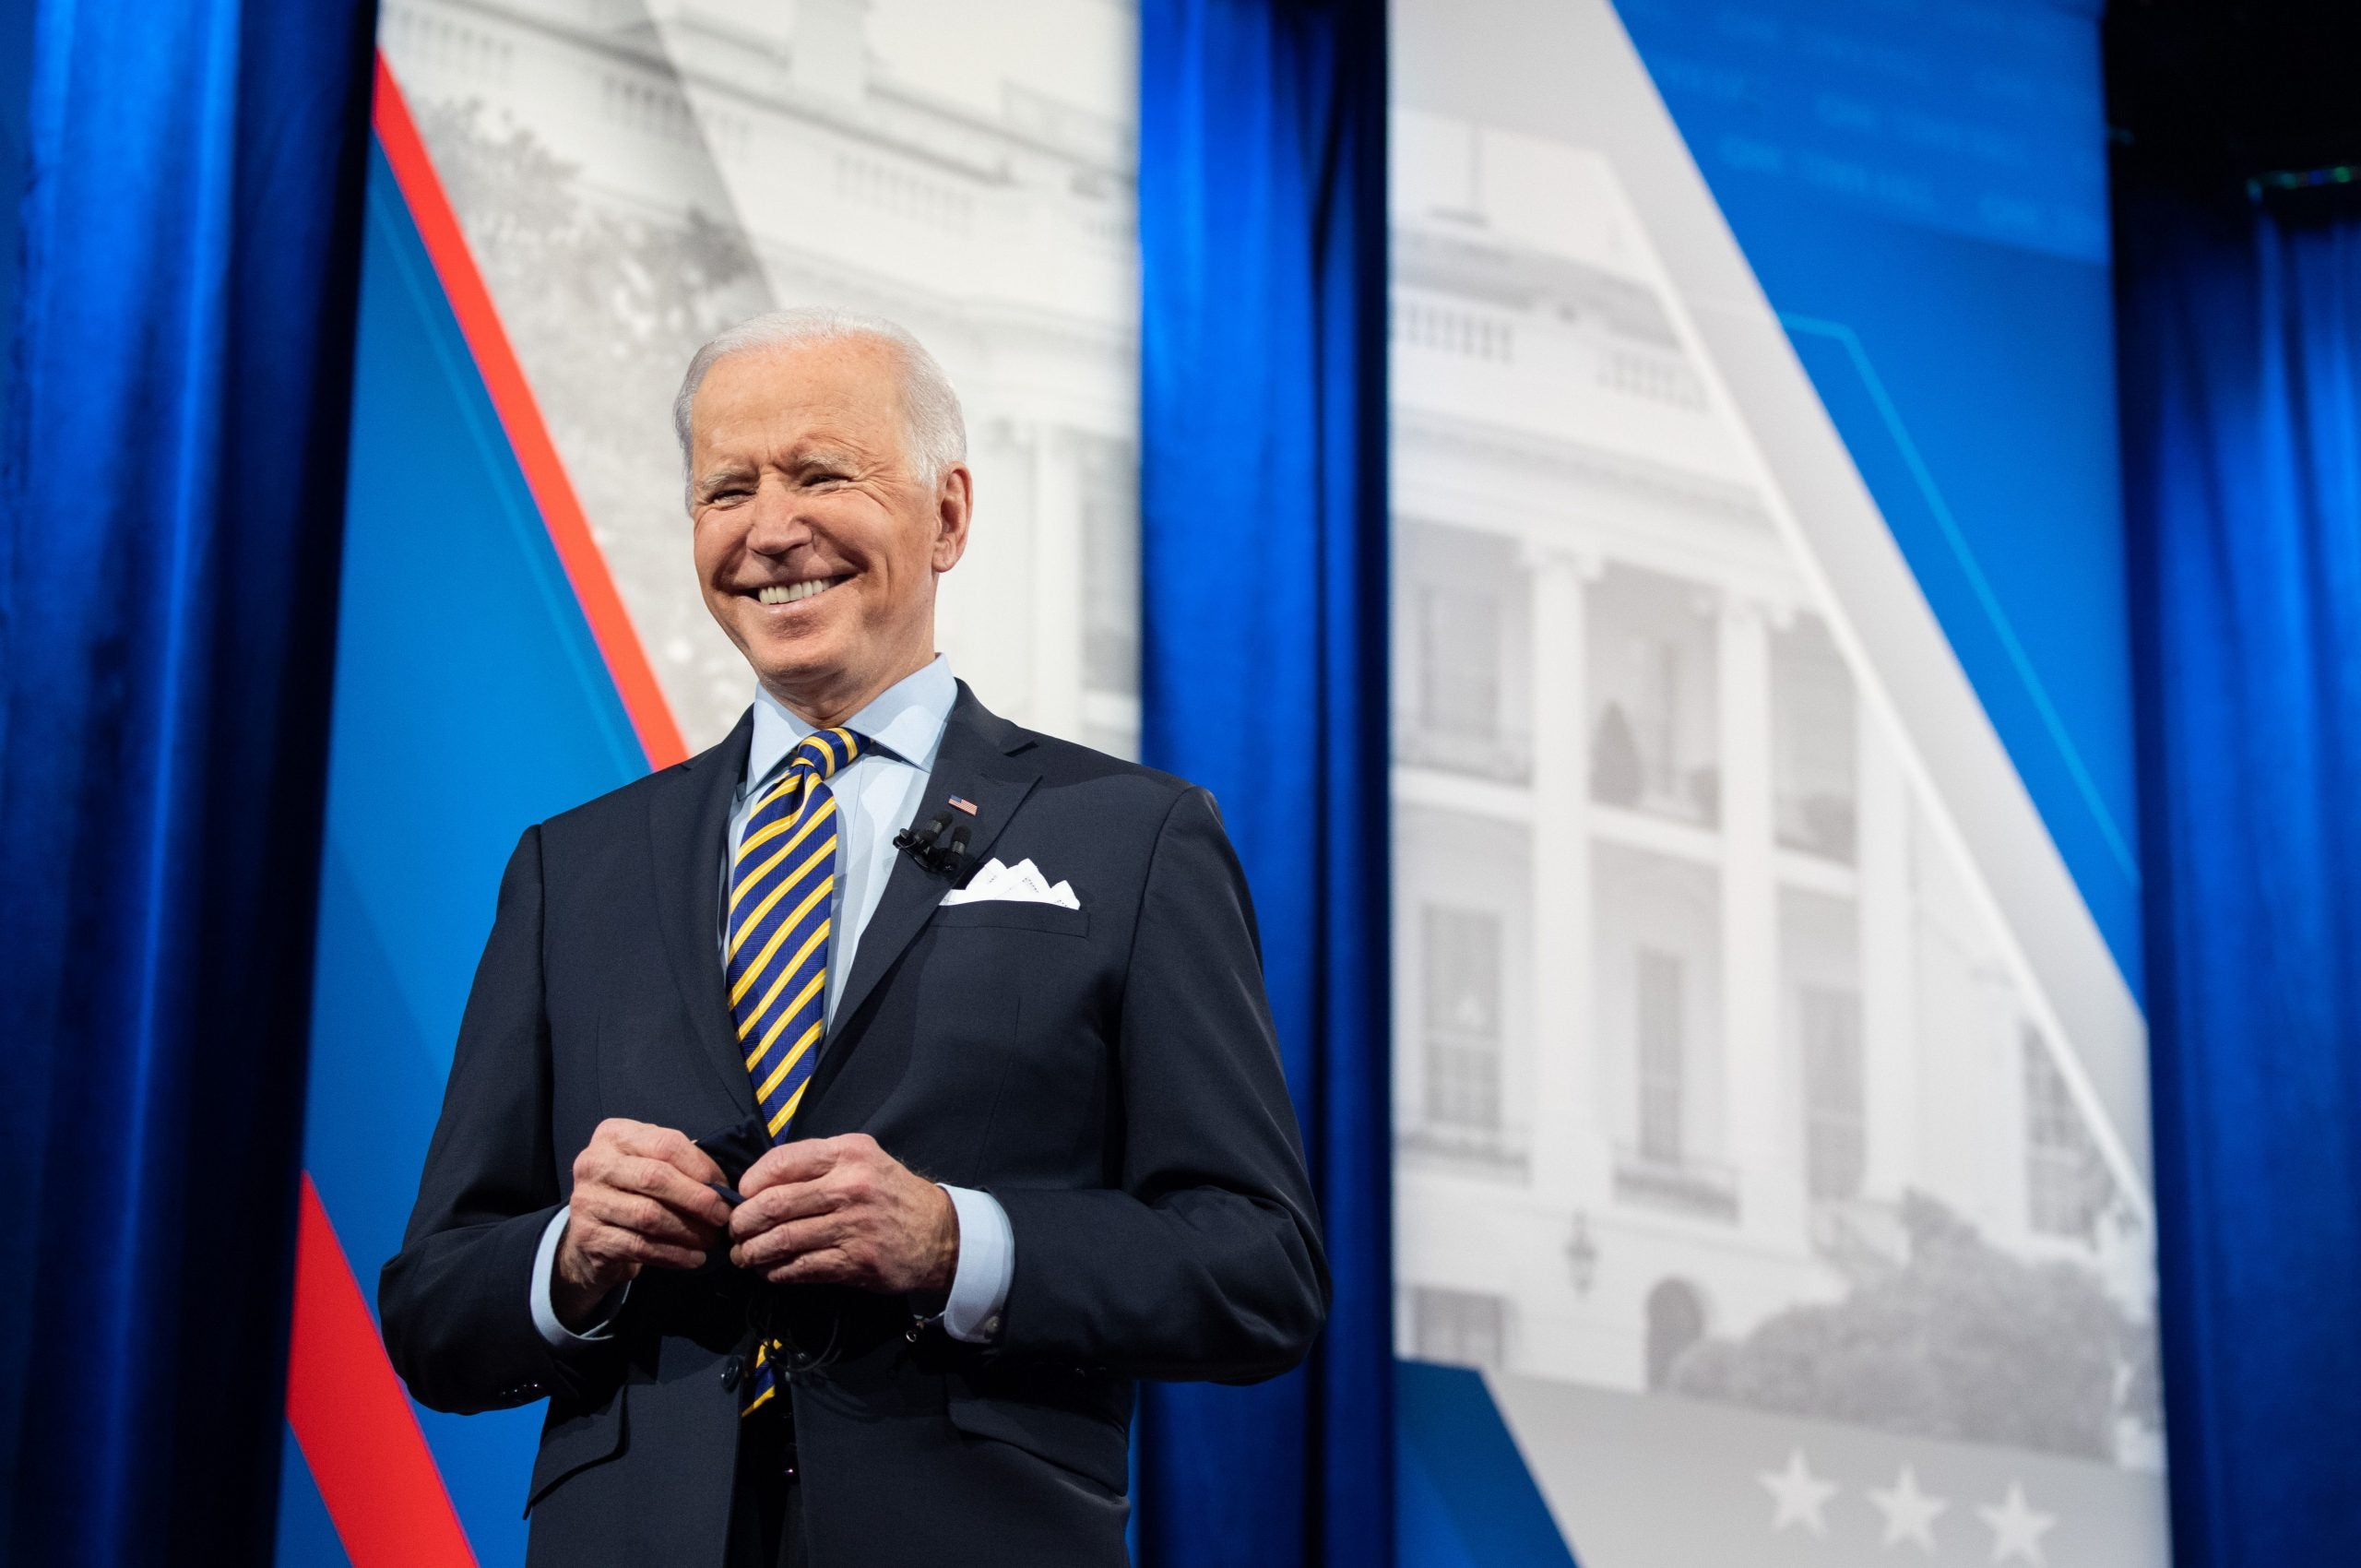 Why should Joe Biden be different when US foreign policy has always been dictated by self-interest?